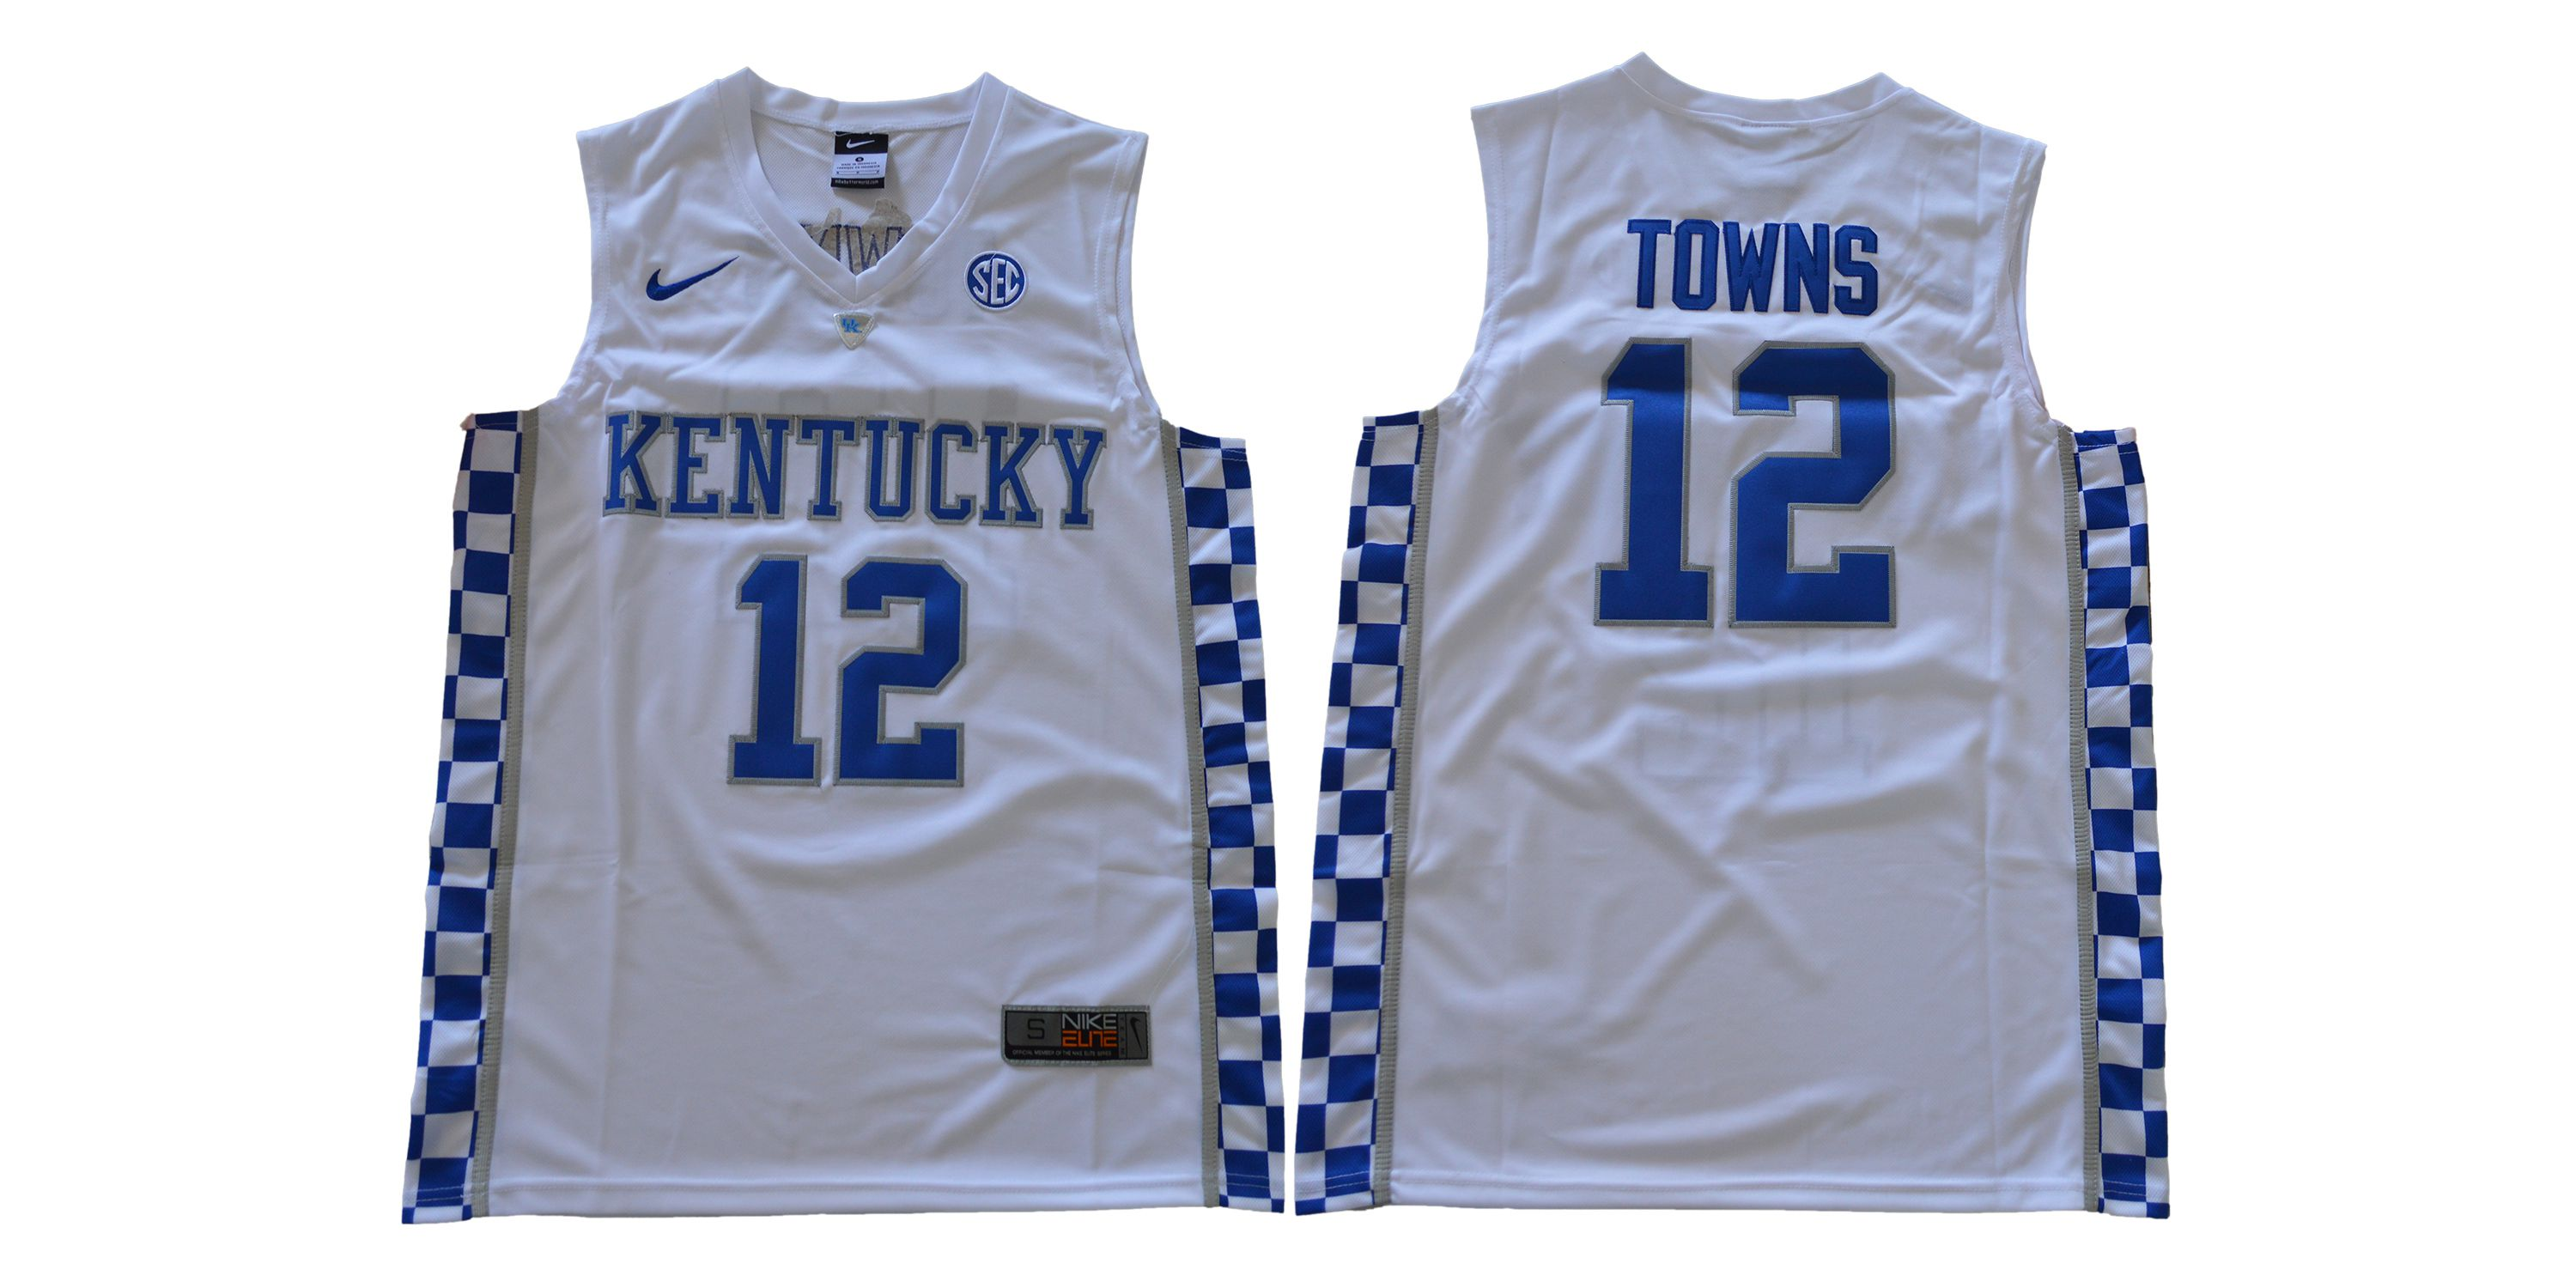 Men Kentucky Wildcats 12 Towns White NBA NCAA Jerseys